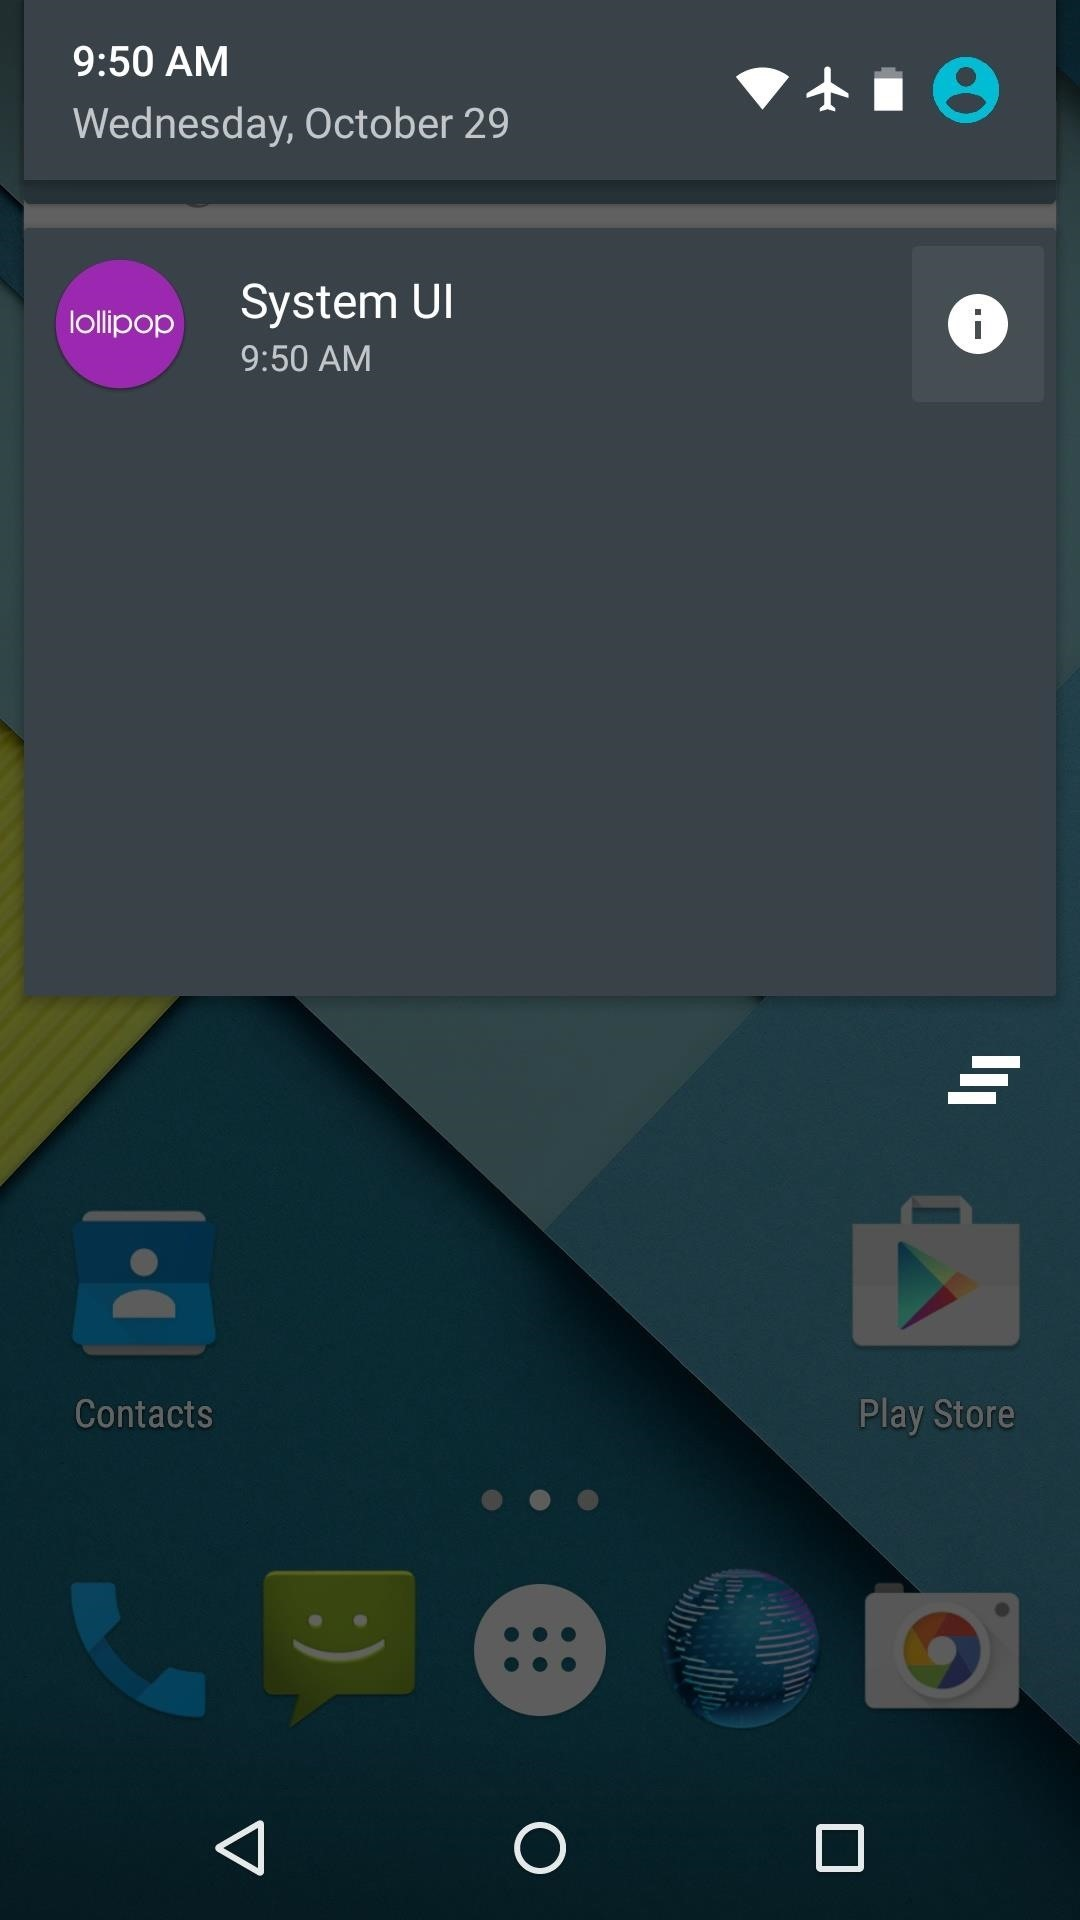 Android Lollipop—All the New Features You Need to Know About